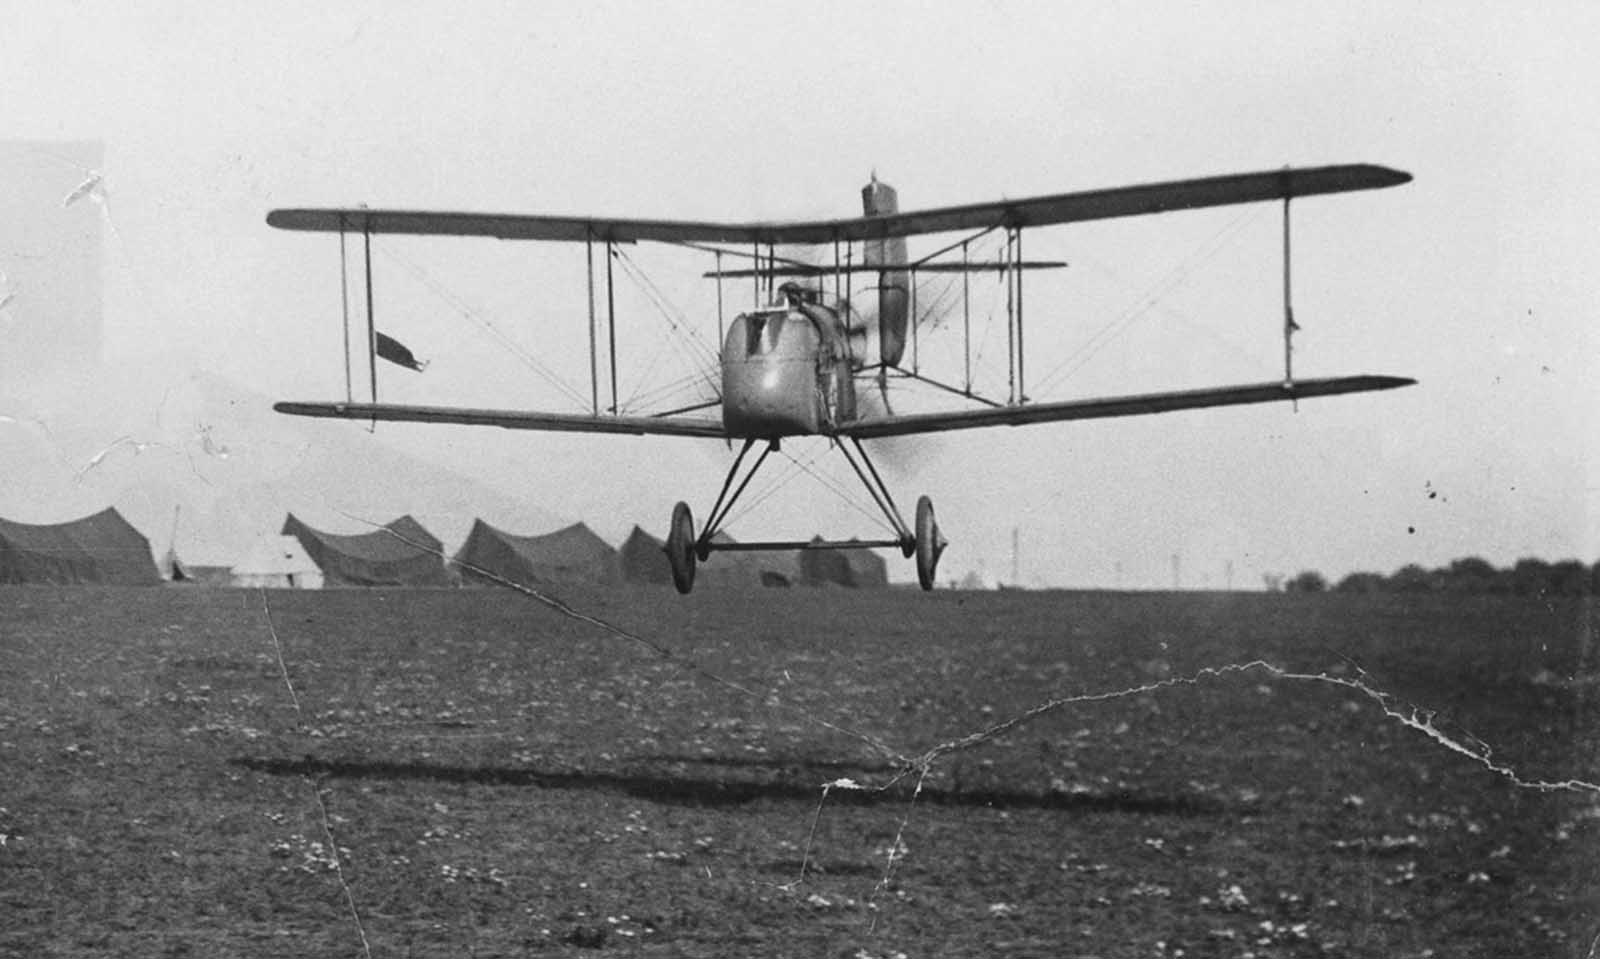 A British Commander starting off on a raid, flying an Airco DH.2 biplane.